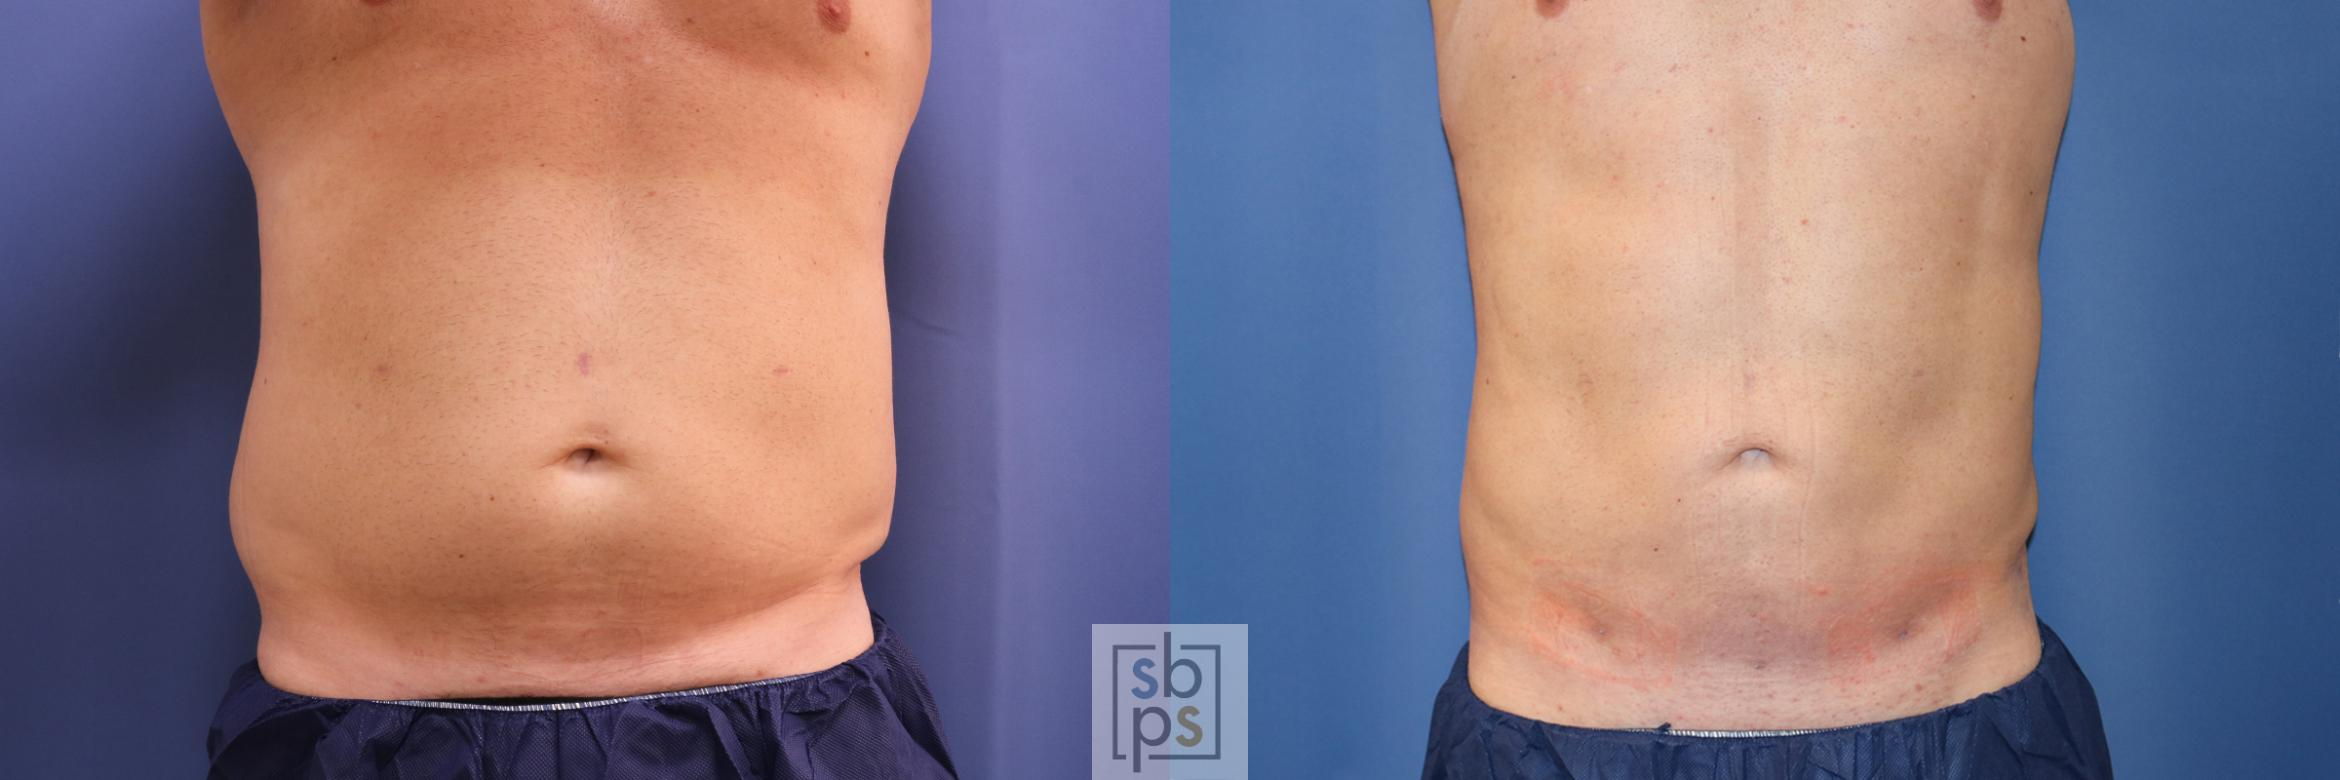 Liposuction Before & After Photo | Torrance, CA | Plastic Surgery Source